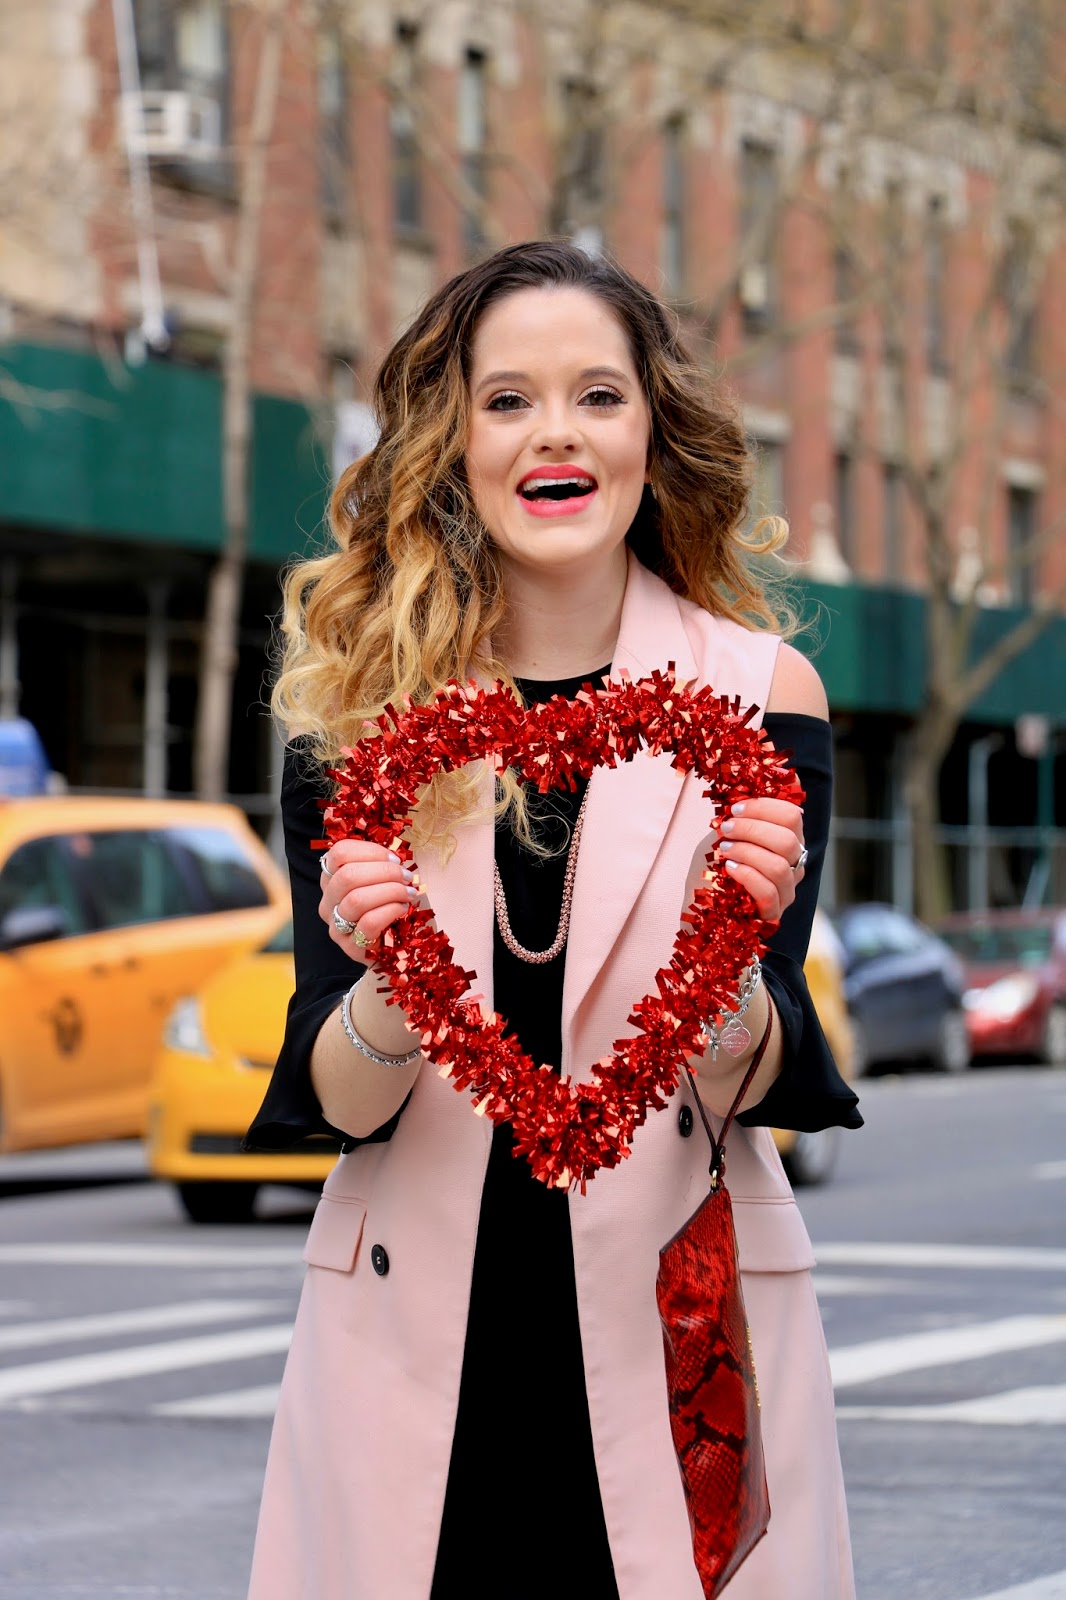 Nyc fashion blogger Kathleen Harper's Valentine's Day pics